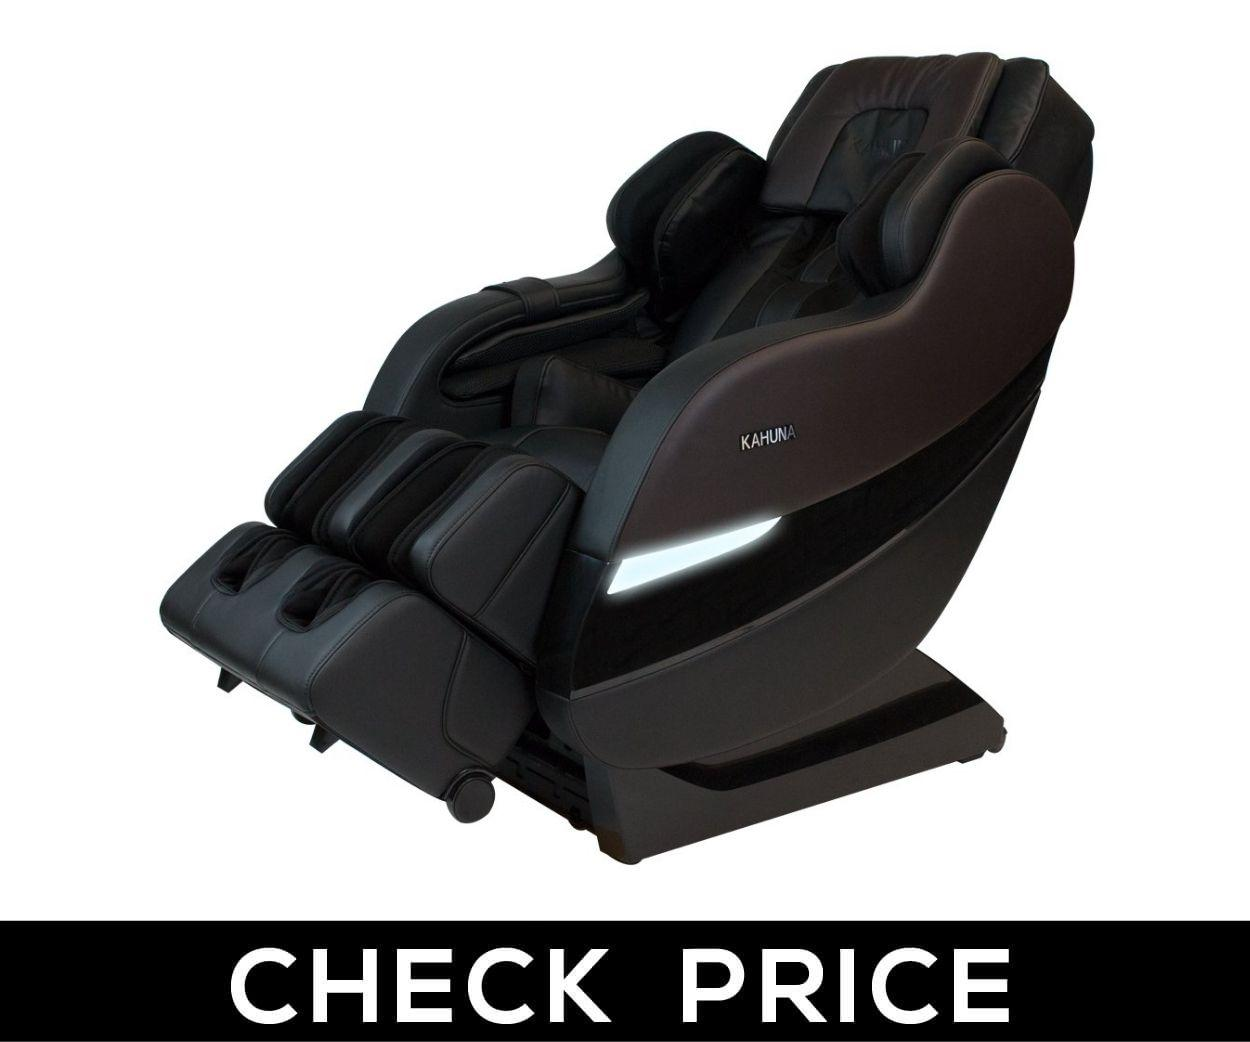 Kahuna SM-7300 – Best Massage Chair for Home